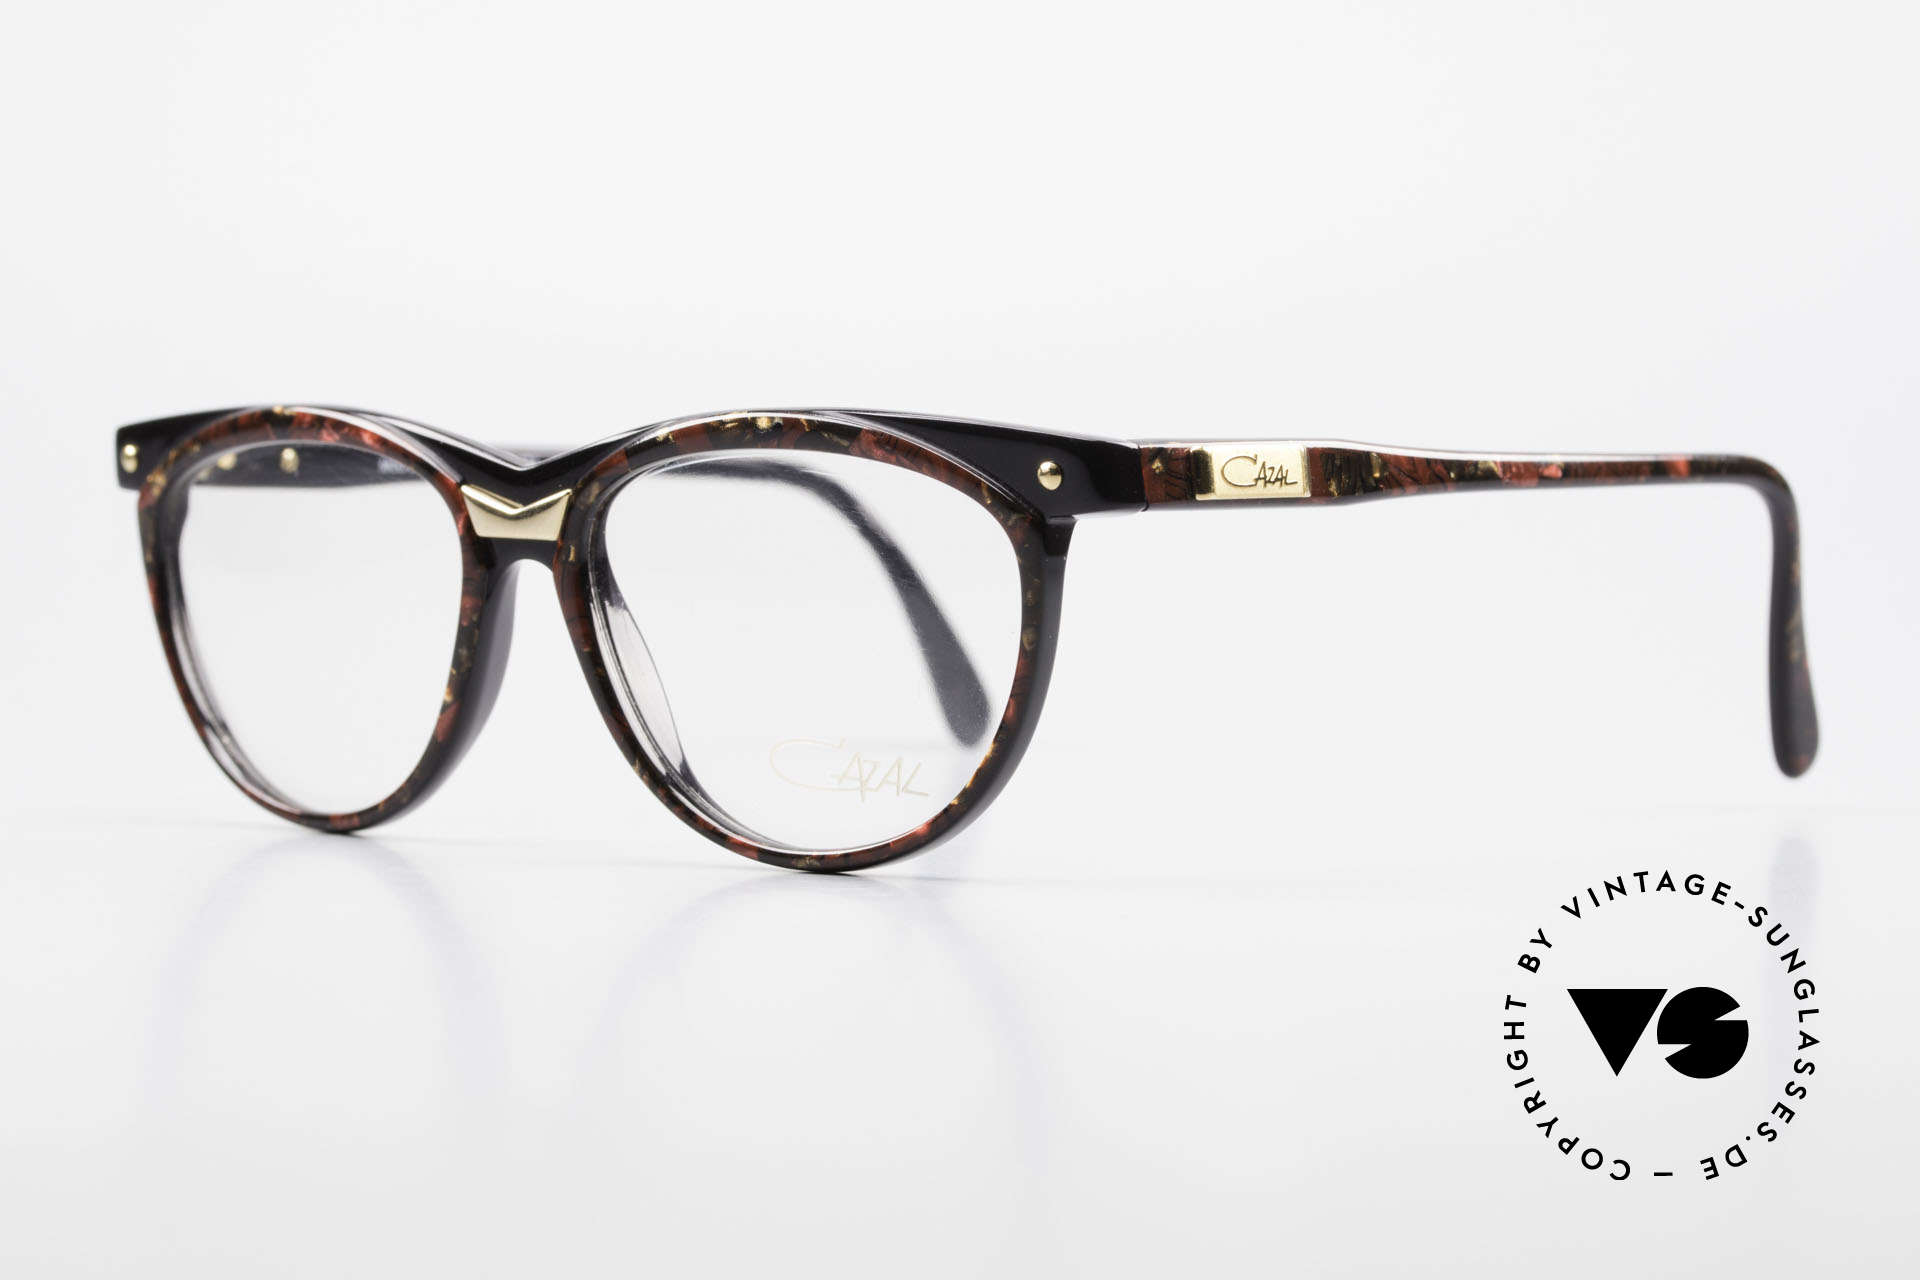 Cazal 331 True Vintage Designer Frame, unique style & coloring (root-wood patterned), Made for Men and Women